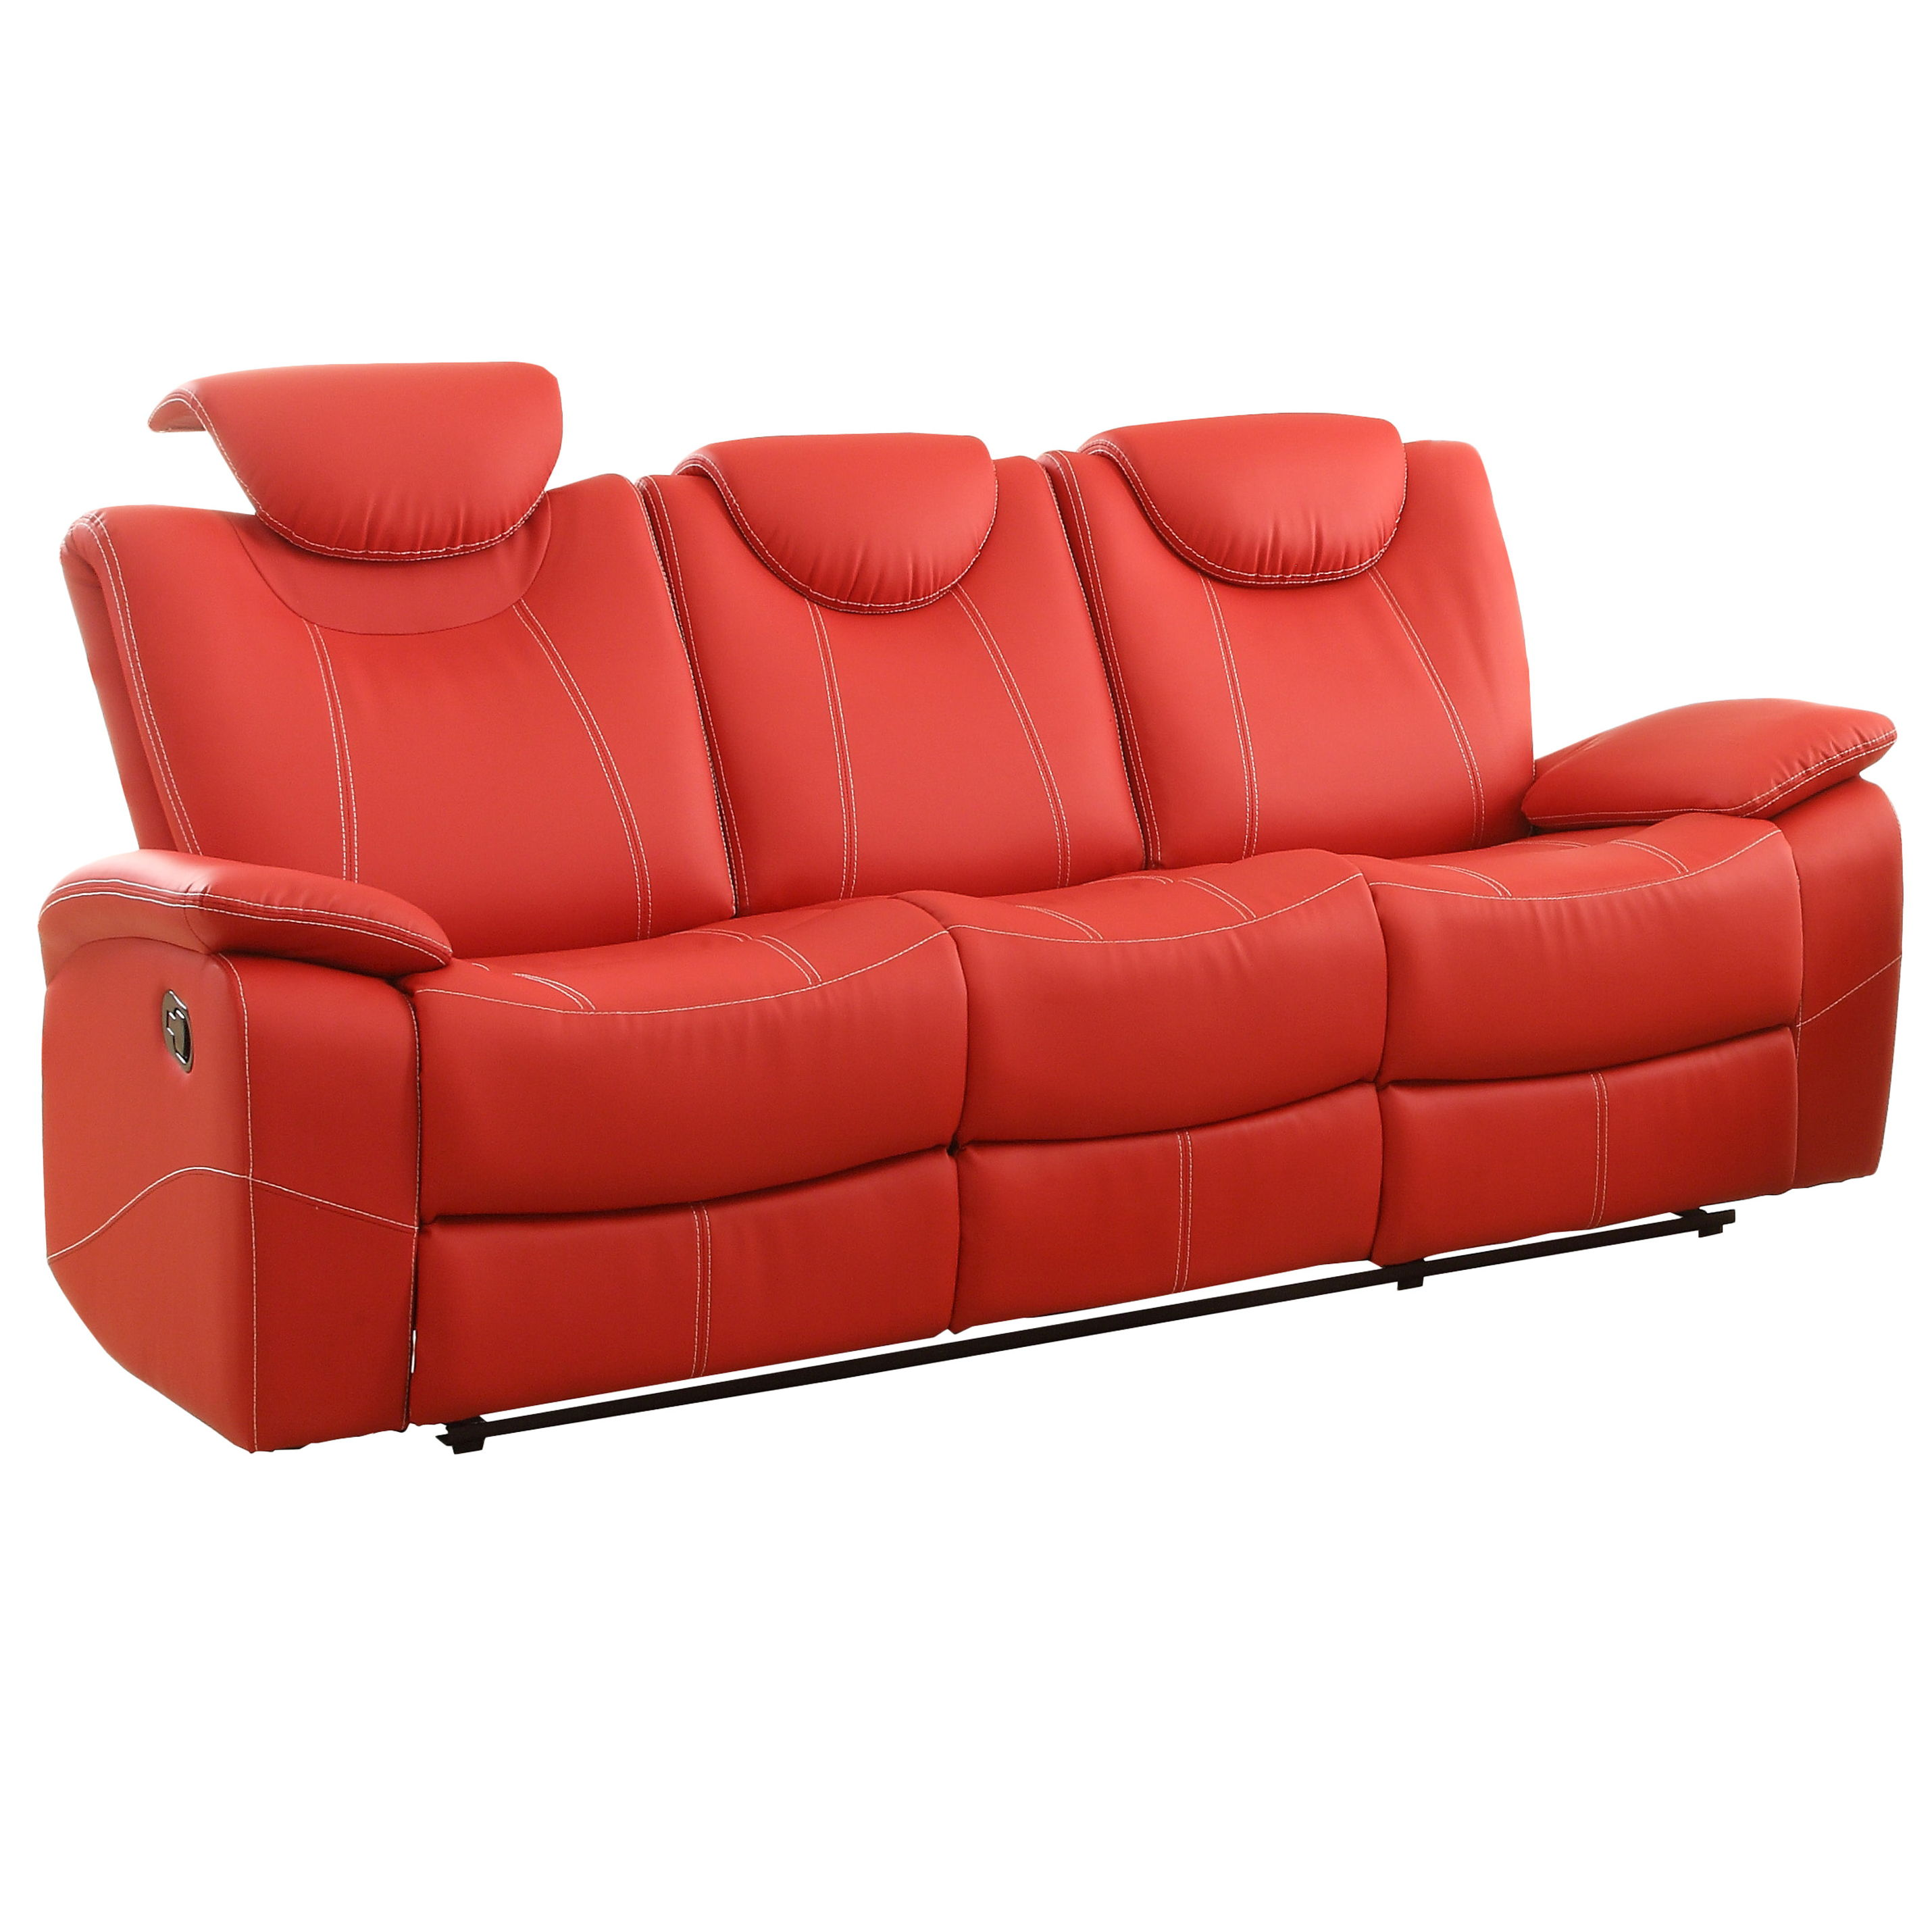 Home Elegance Talbot Red Double Reclining Sofa